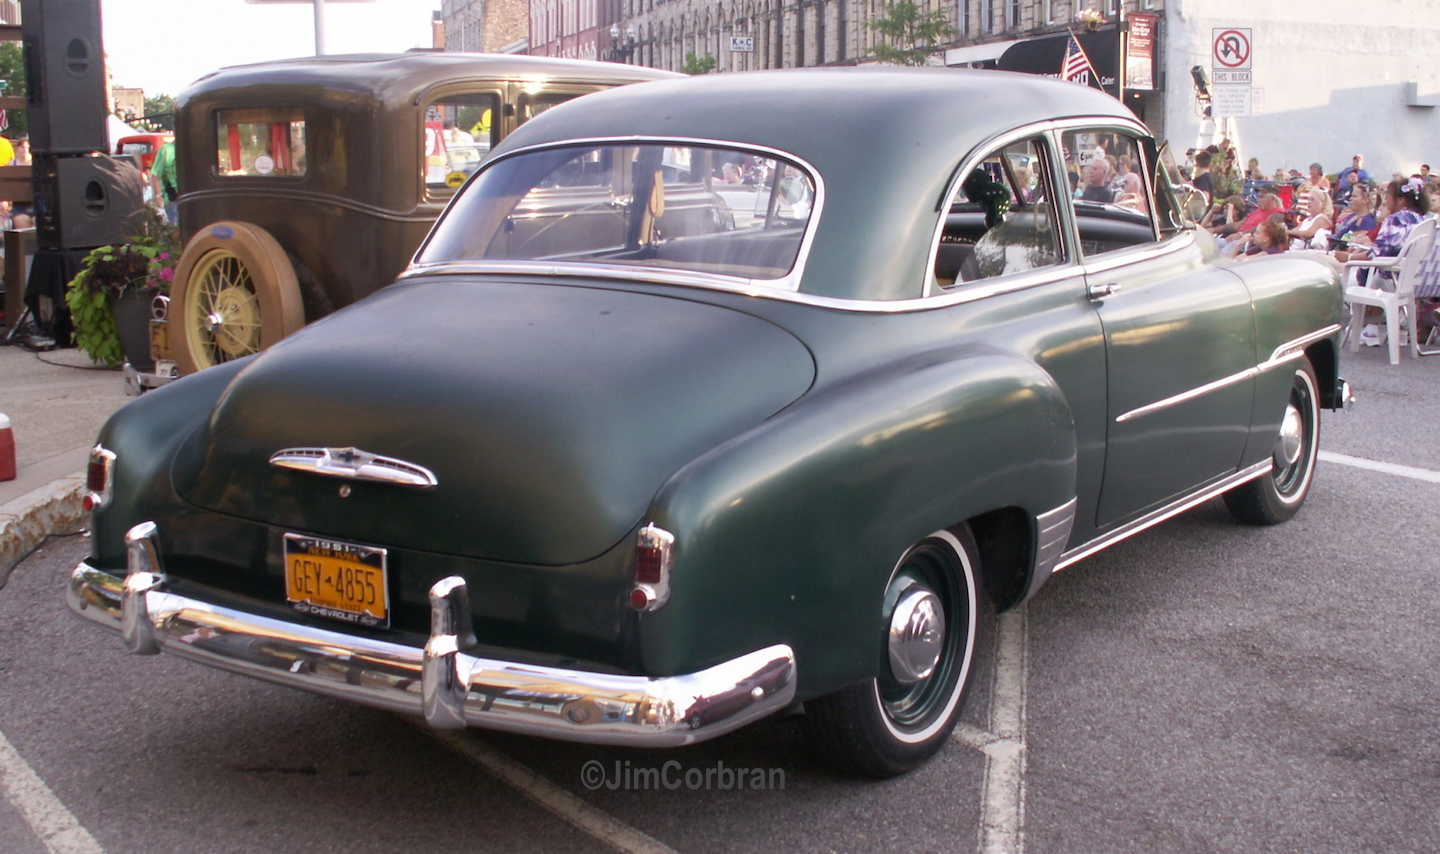 RealRides of WNY - 1951 Chevrolet DeLuxe